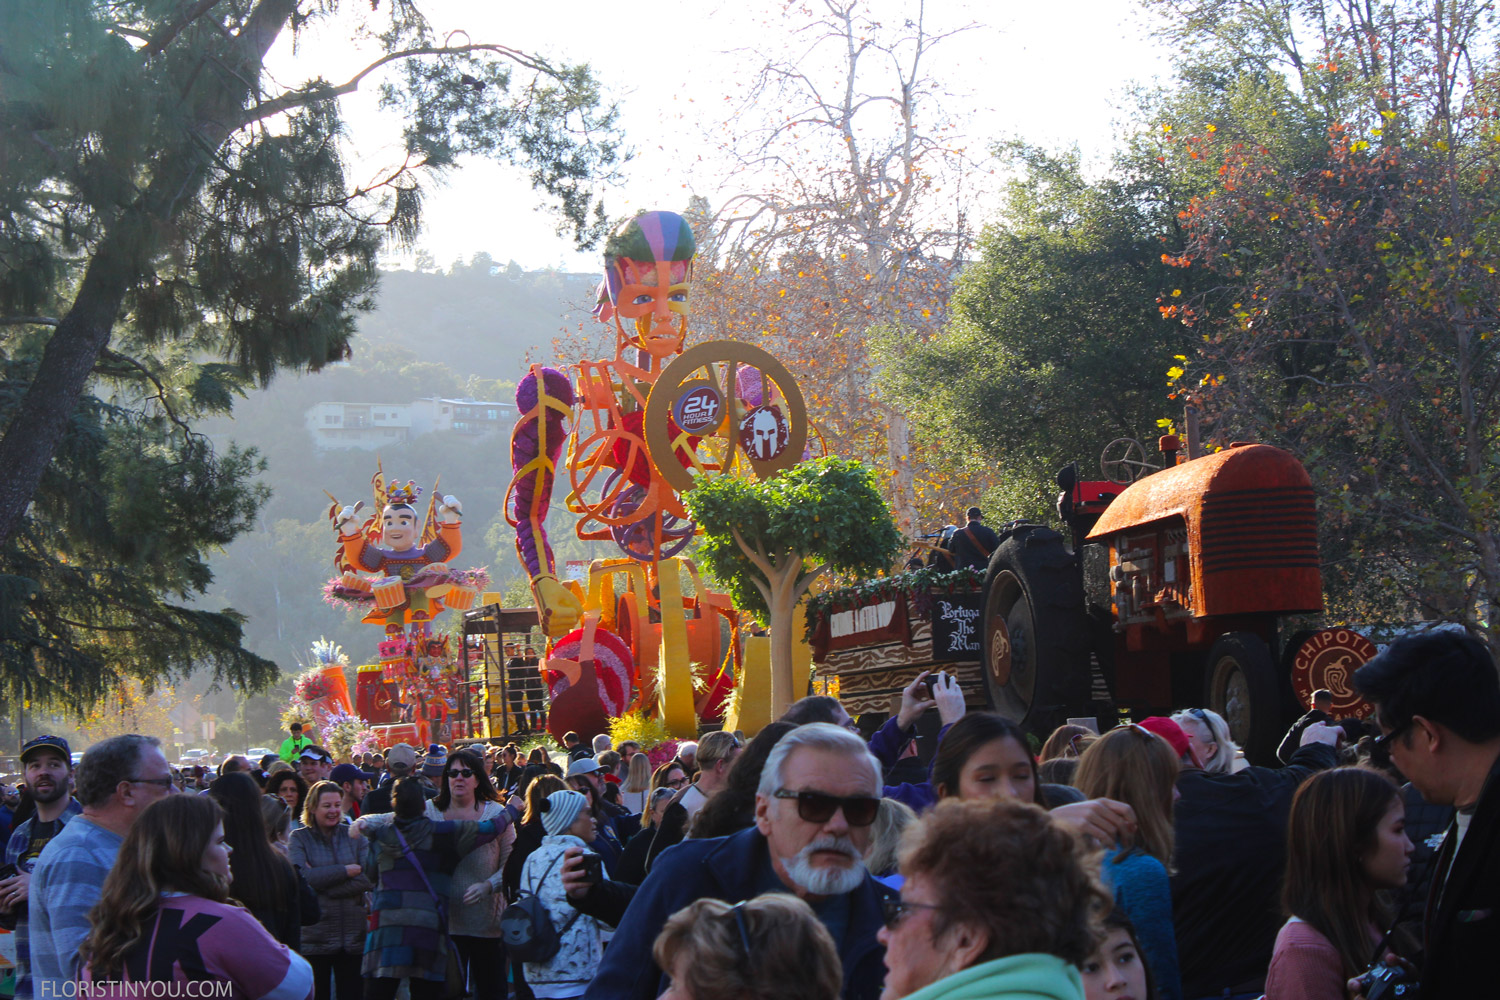 Finishing touches placed on floats by the Rose Bowl on New Year's Eve.